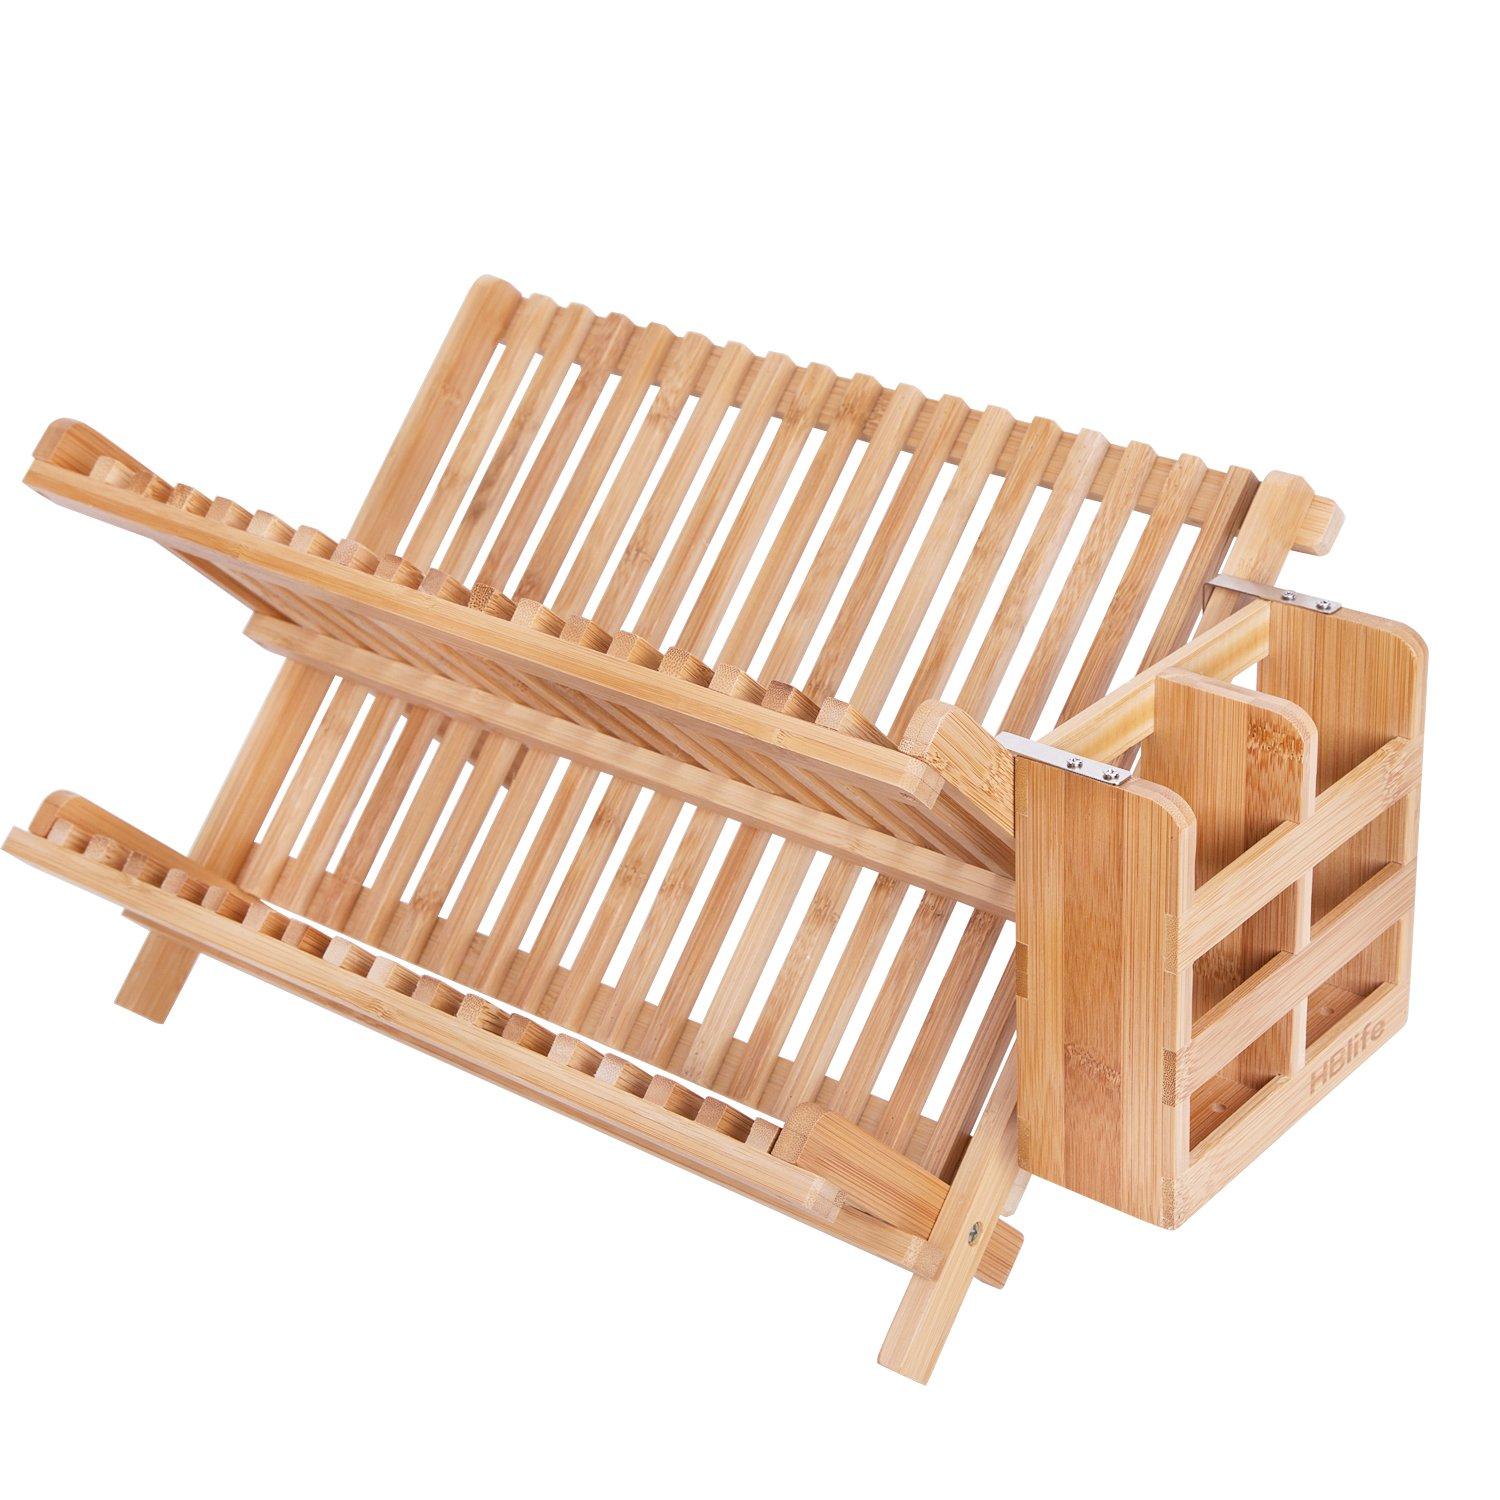 Dish Rack,HBlife Bamboo Folding 2-Tier Collapsible Drainer Dish Drying Rack With Utensils Flatware Holder Set (Dish Rack With Utensil Holder)…